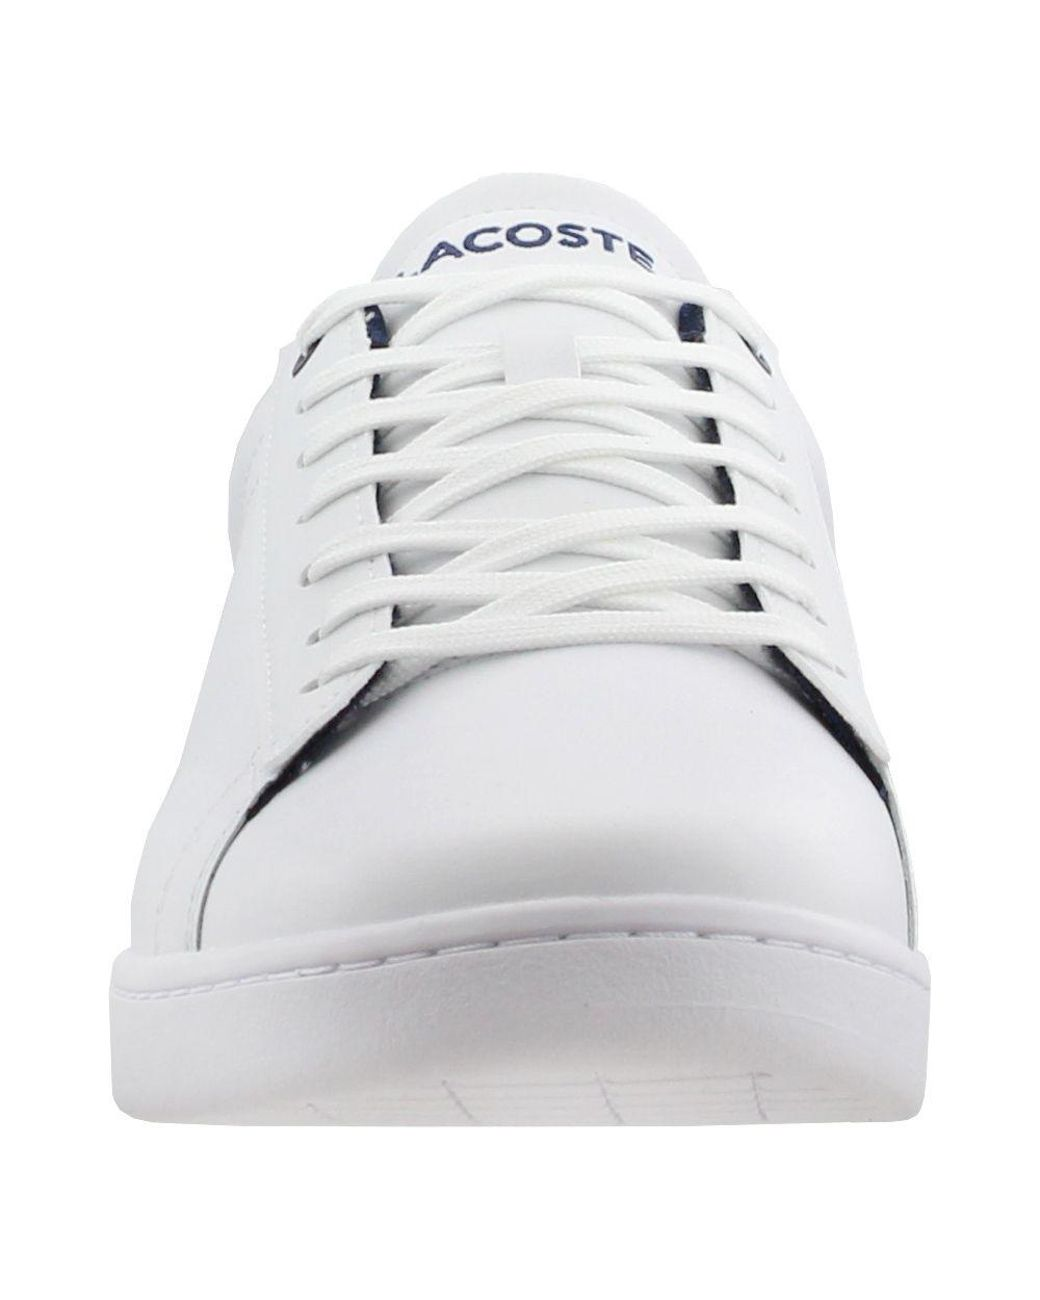 65f0742a7 Lyst - Lacoste Carnaby Evo 119 7 Shoes (trainers) in White for Men